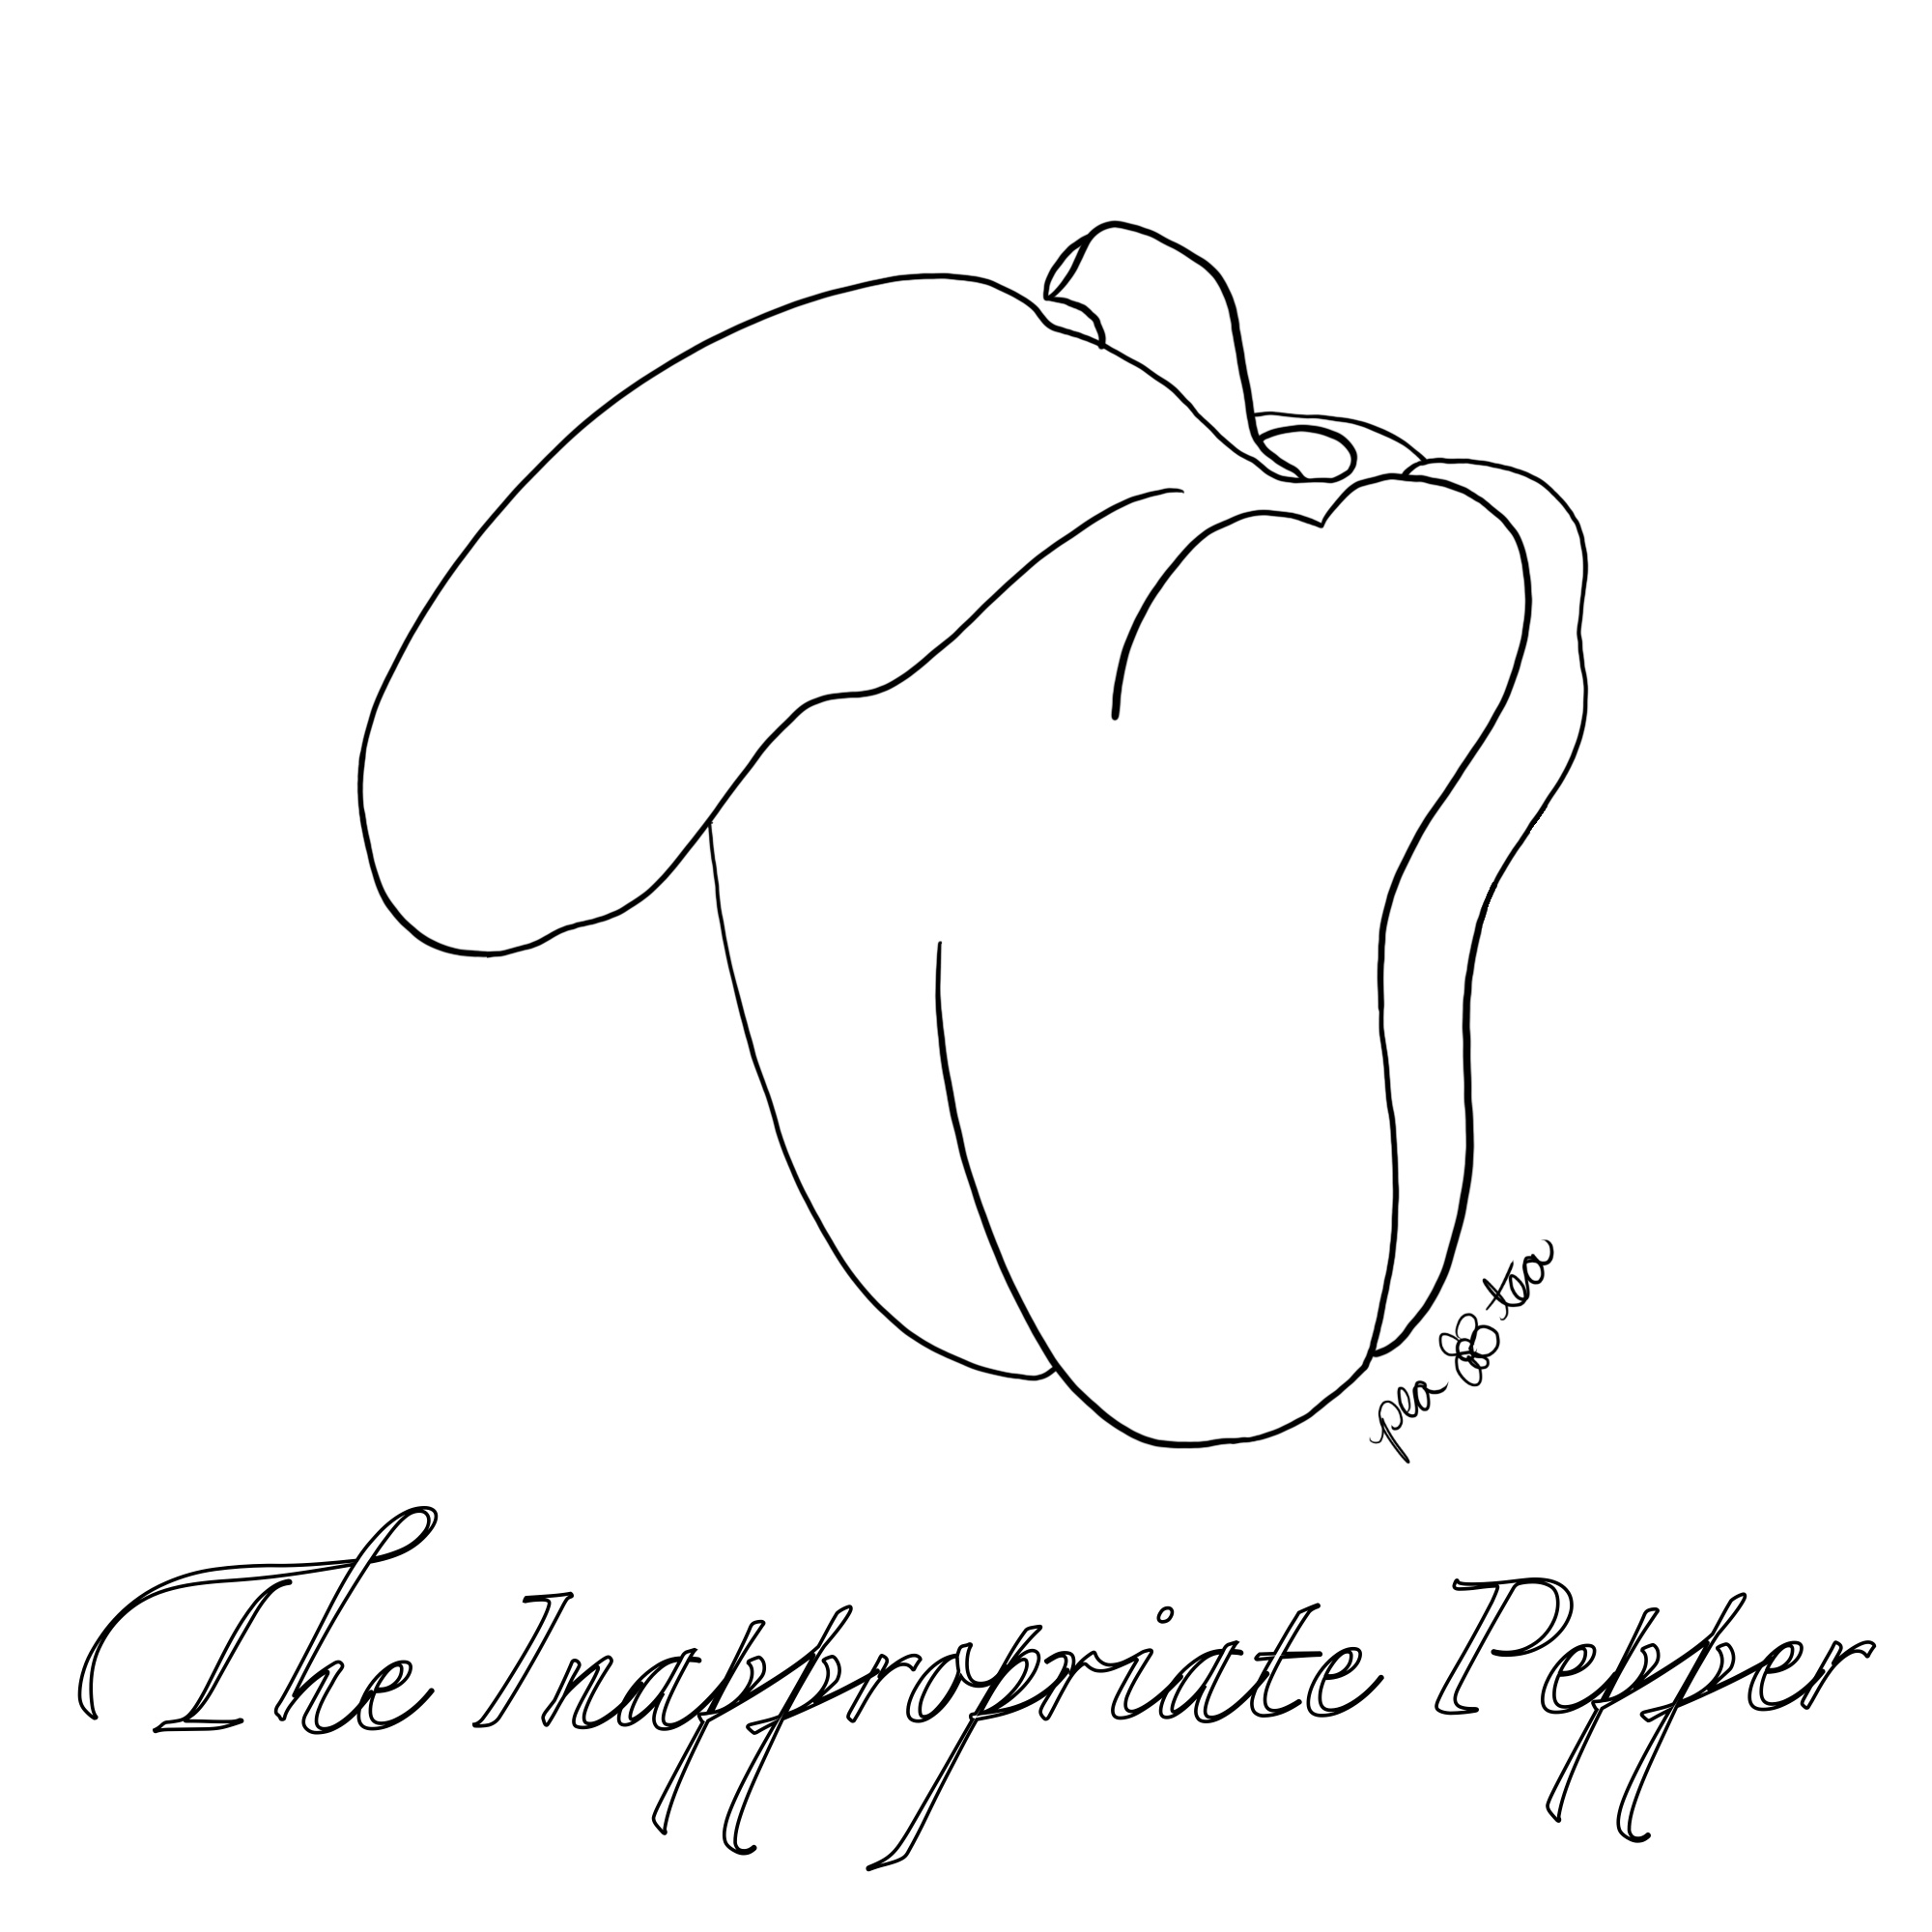 Pen and ink sketch of a bell pepper that has a bulge that resembles a human penis.